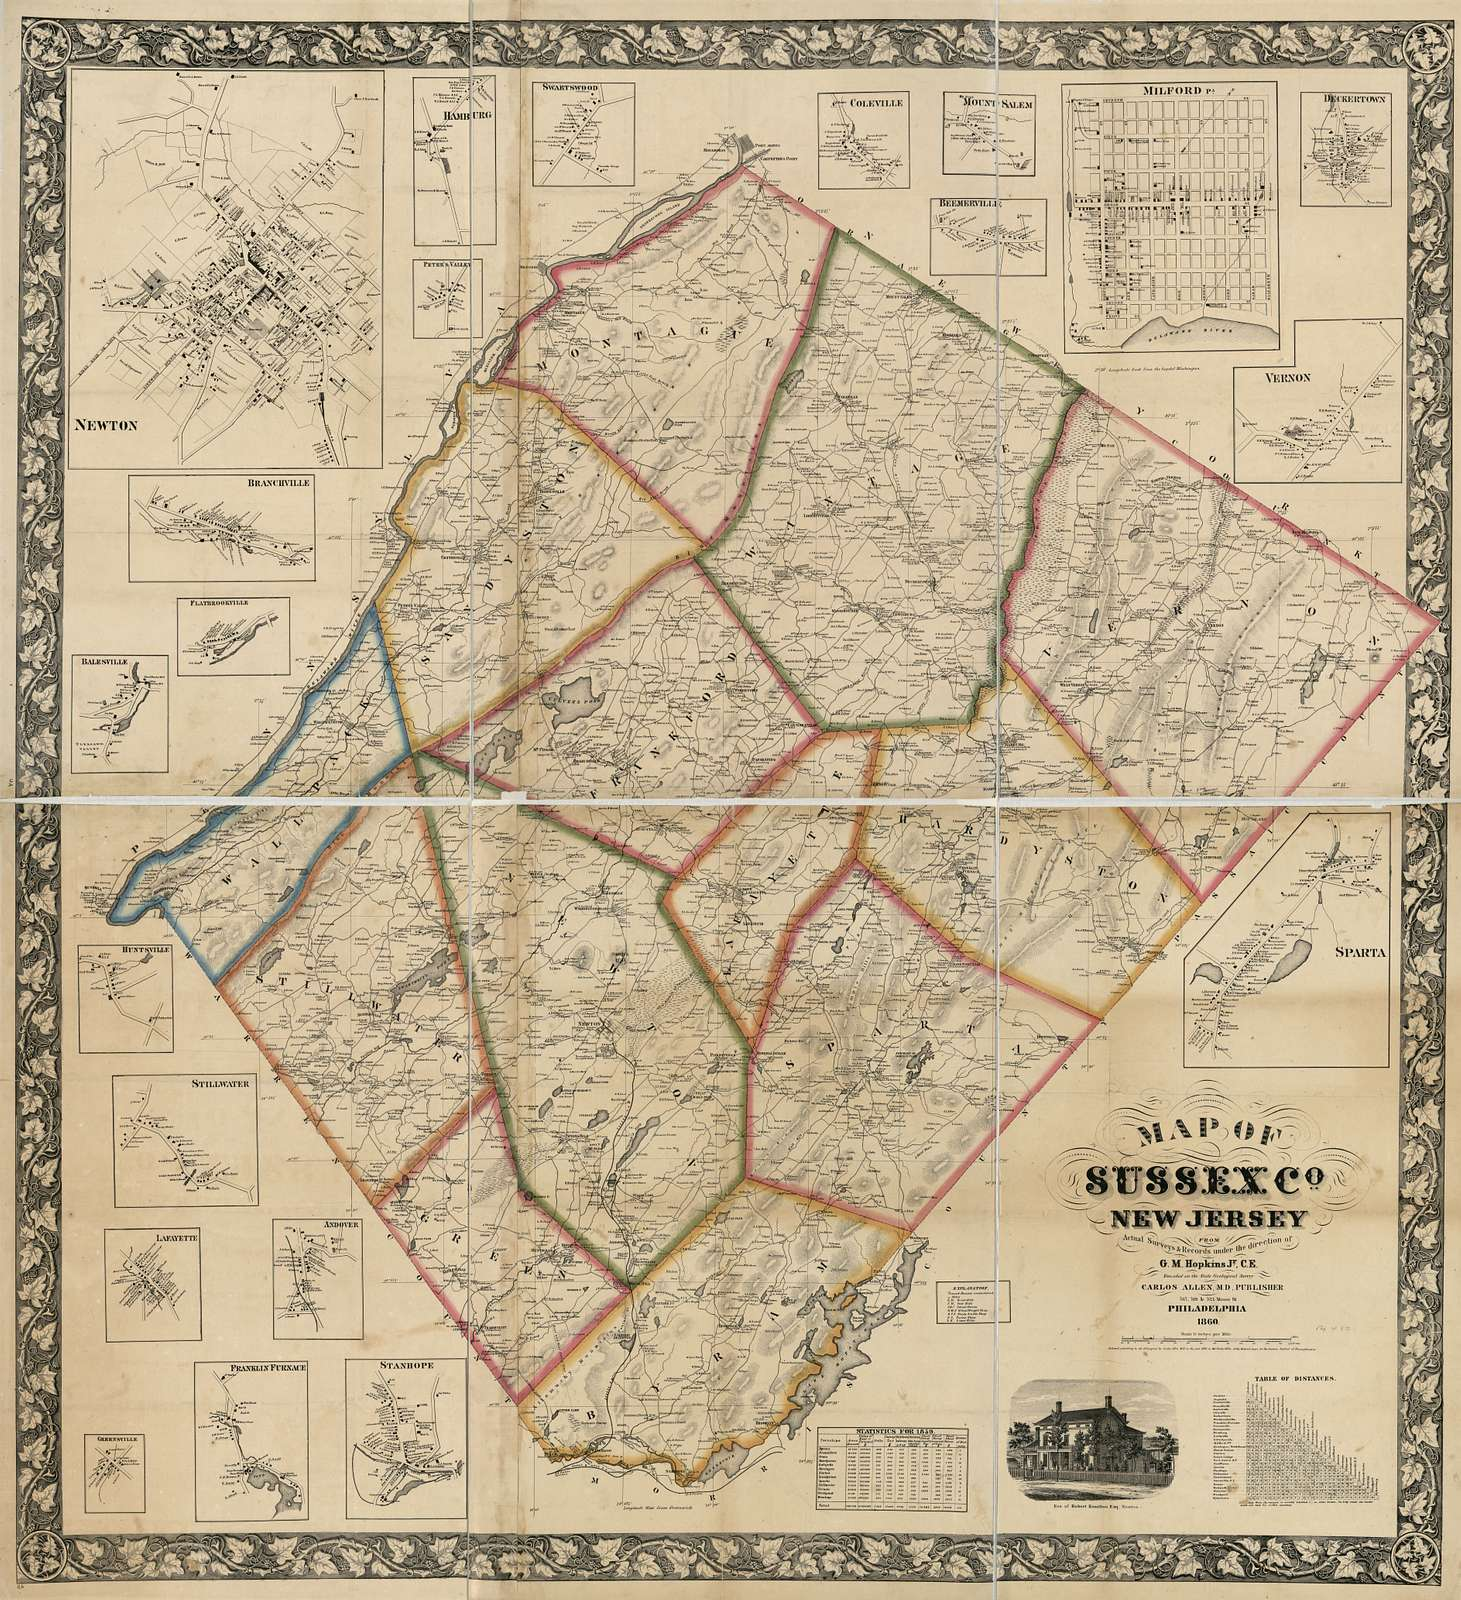 Map of Sussex Co., New Jersey : from actual surveys & records /